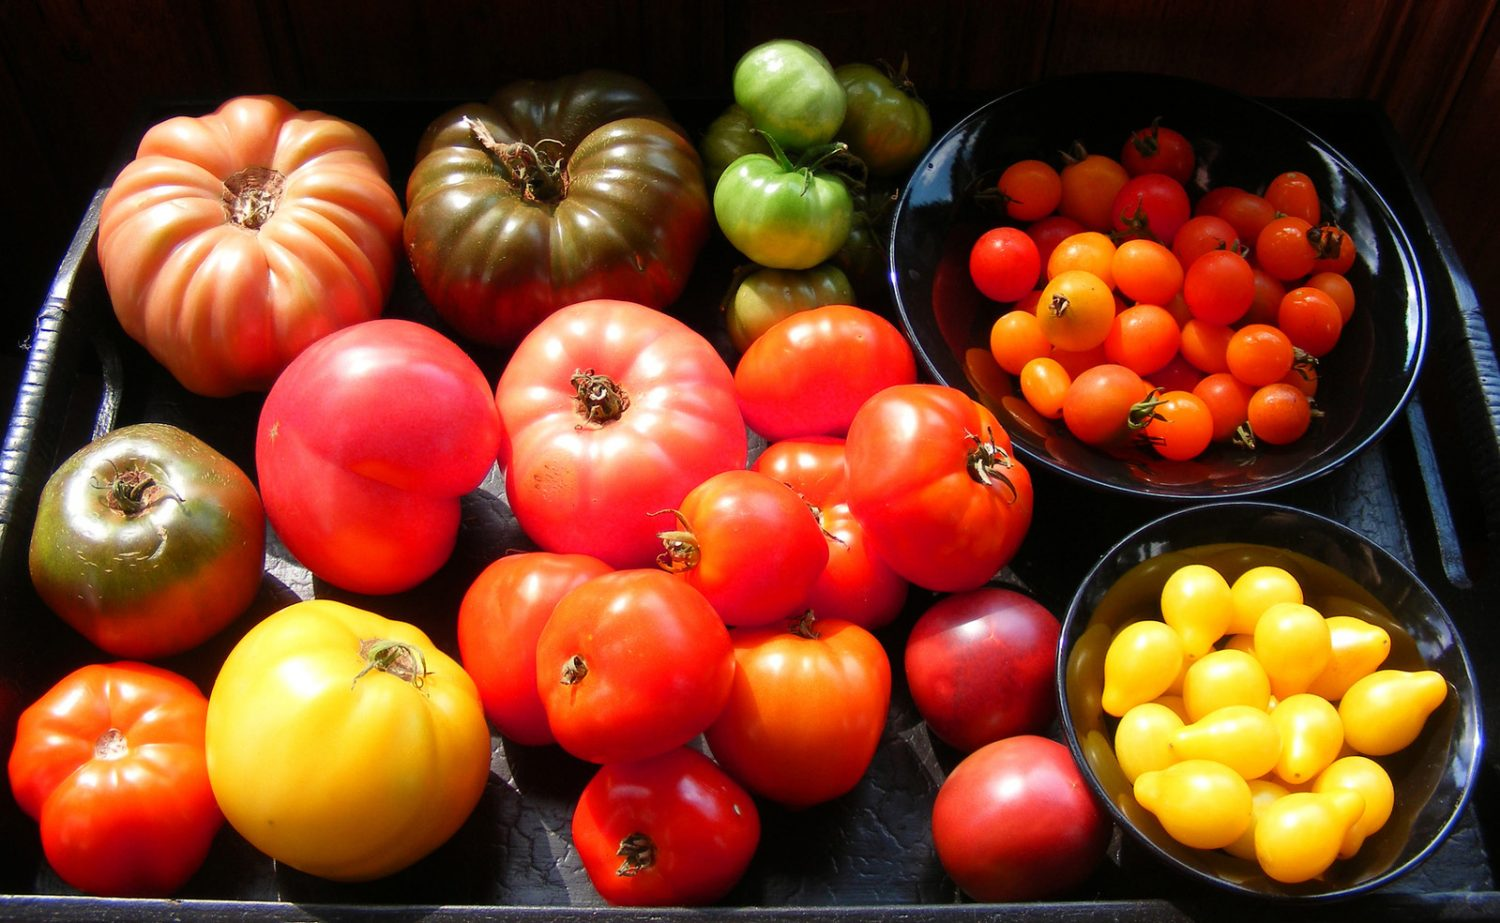 Heirloom varieties are renowned for their flavour, rather than supermarket uniformity